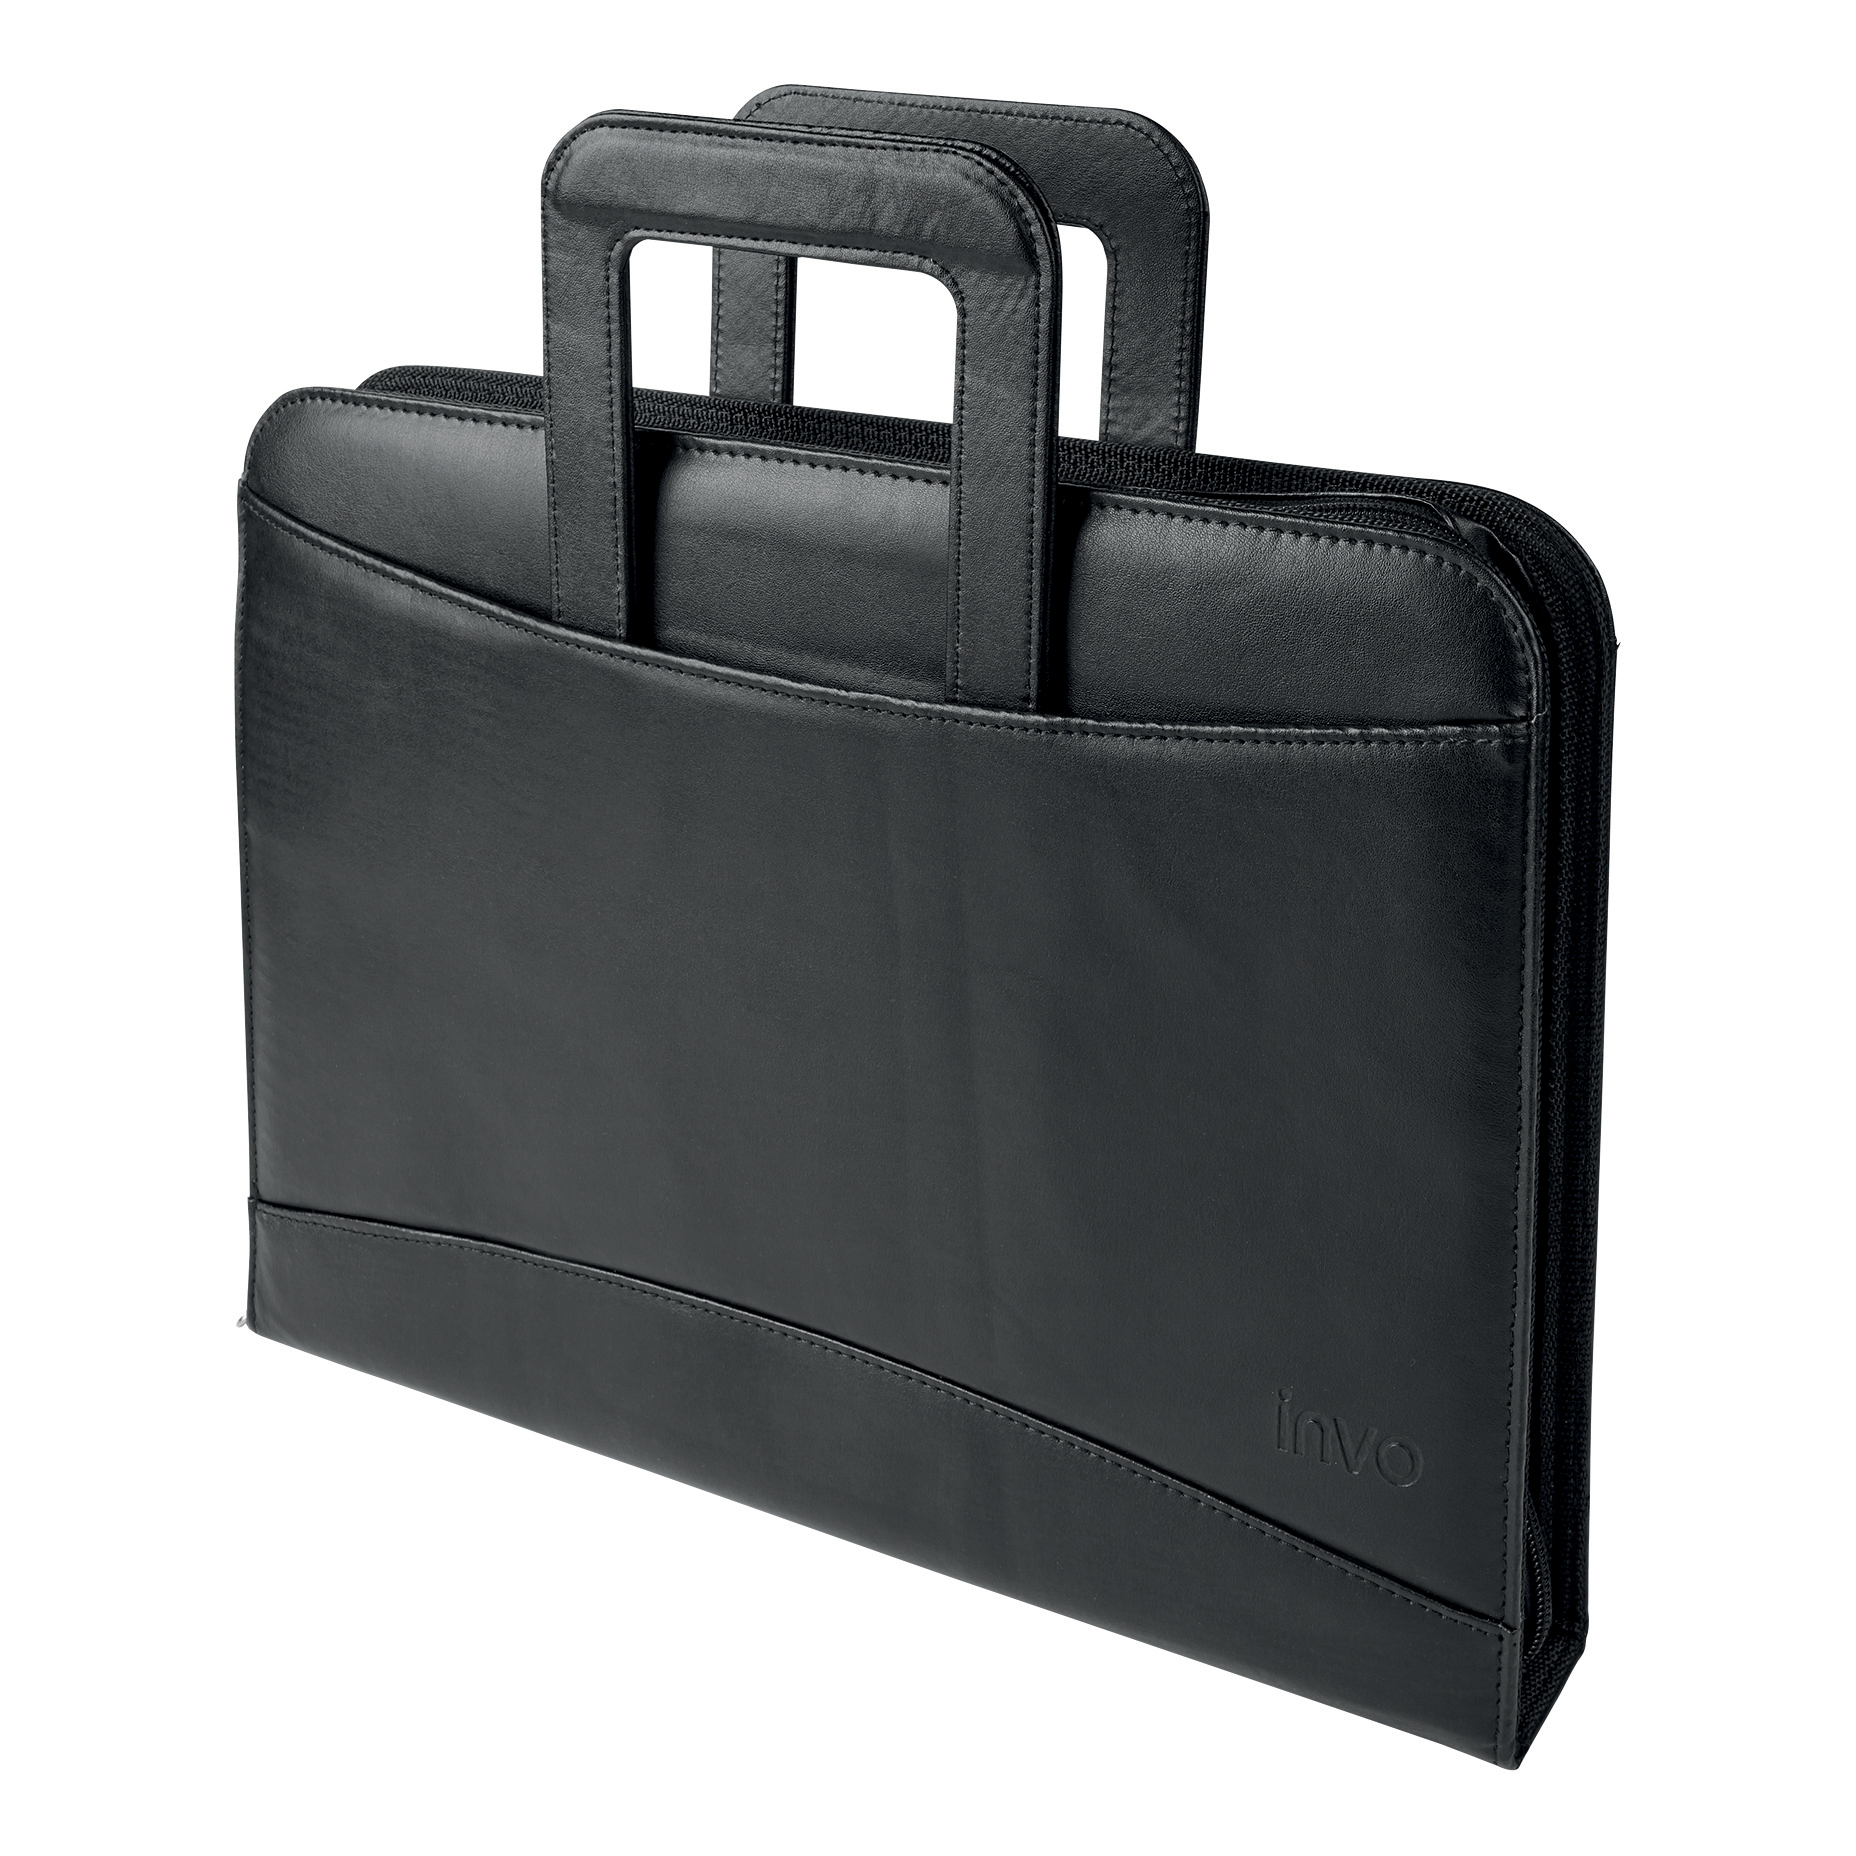 5 Star Office Zipped Conference Ring Binder with Handles Capacity 60mm Leather Look A4 Black